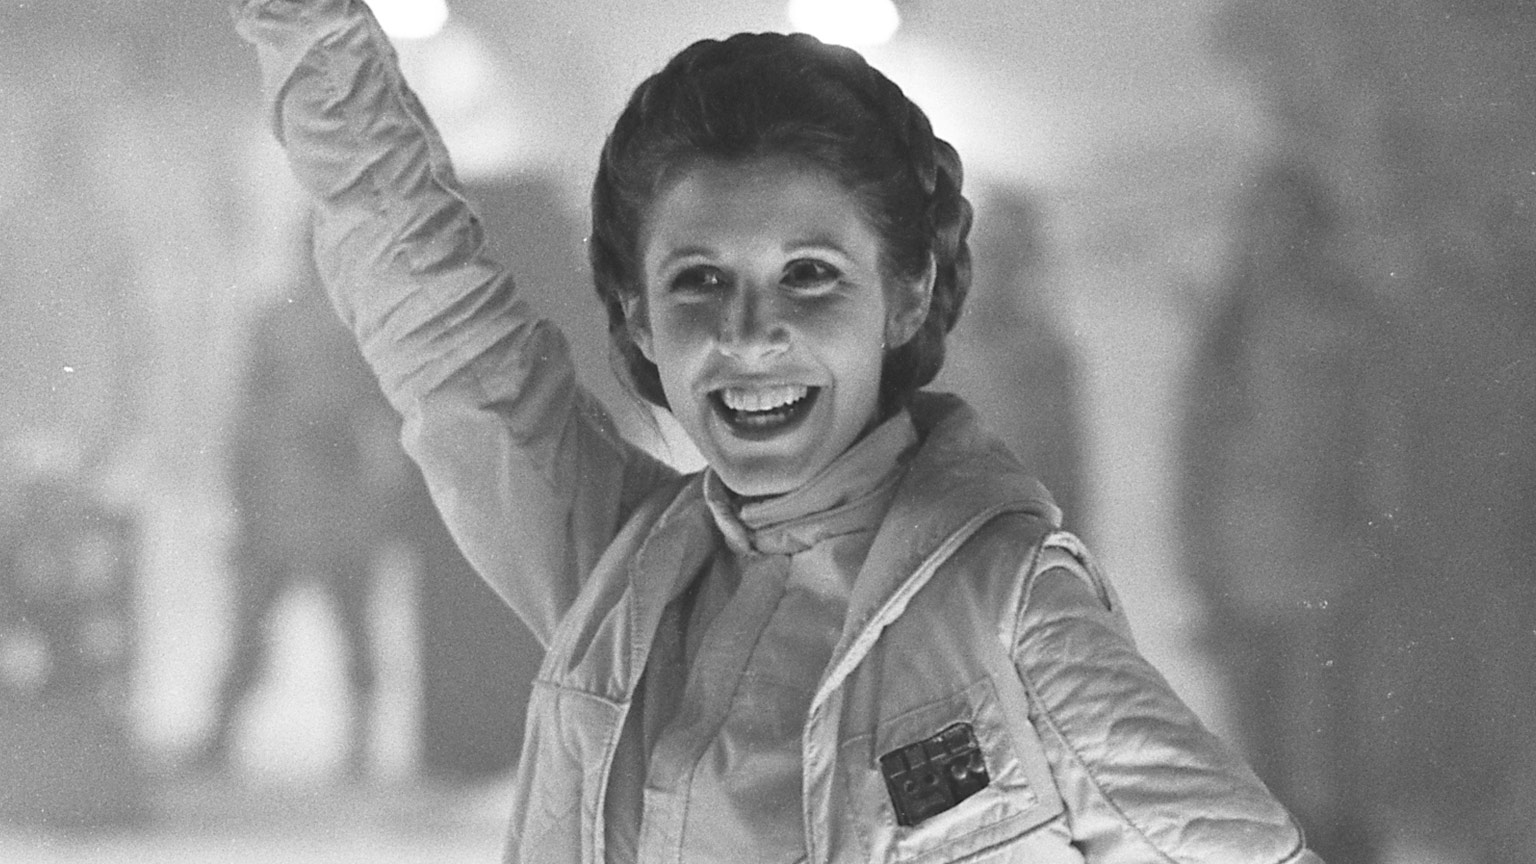 Leia Behind the Scenes of The Empire Strikes Back